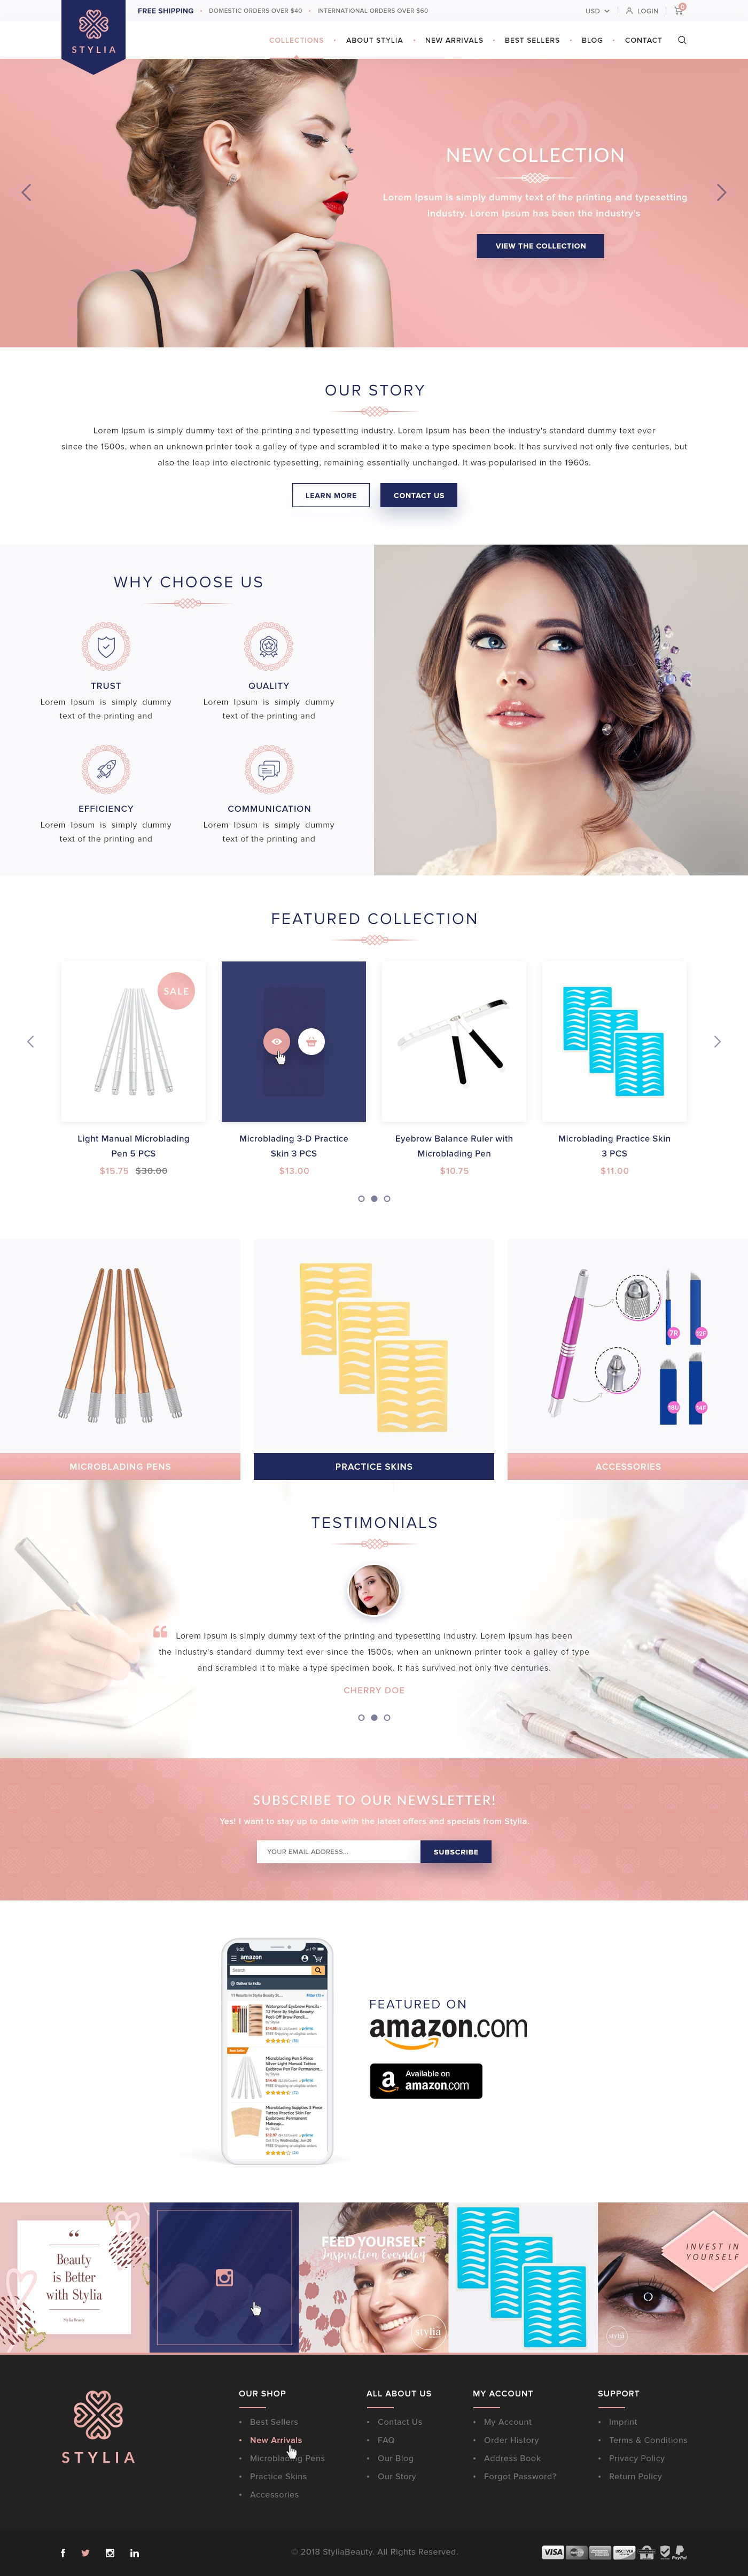 Shopify Website for Stylia Beauty